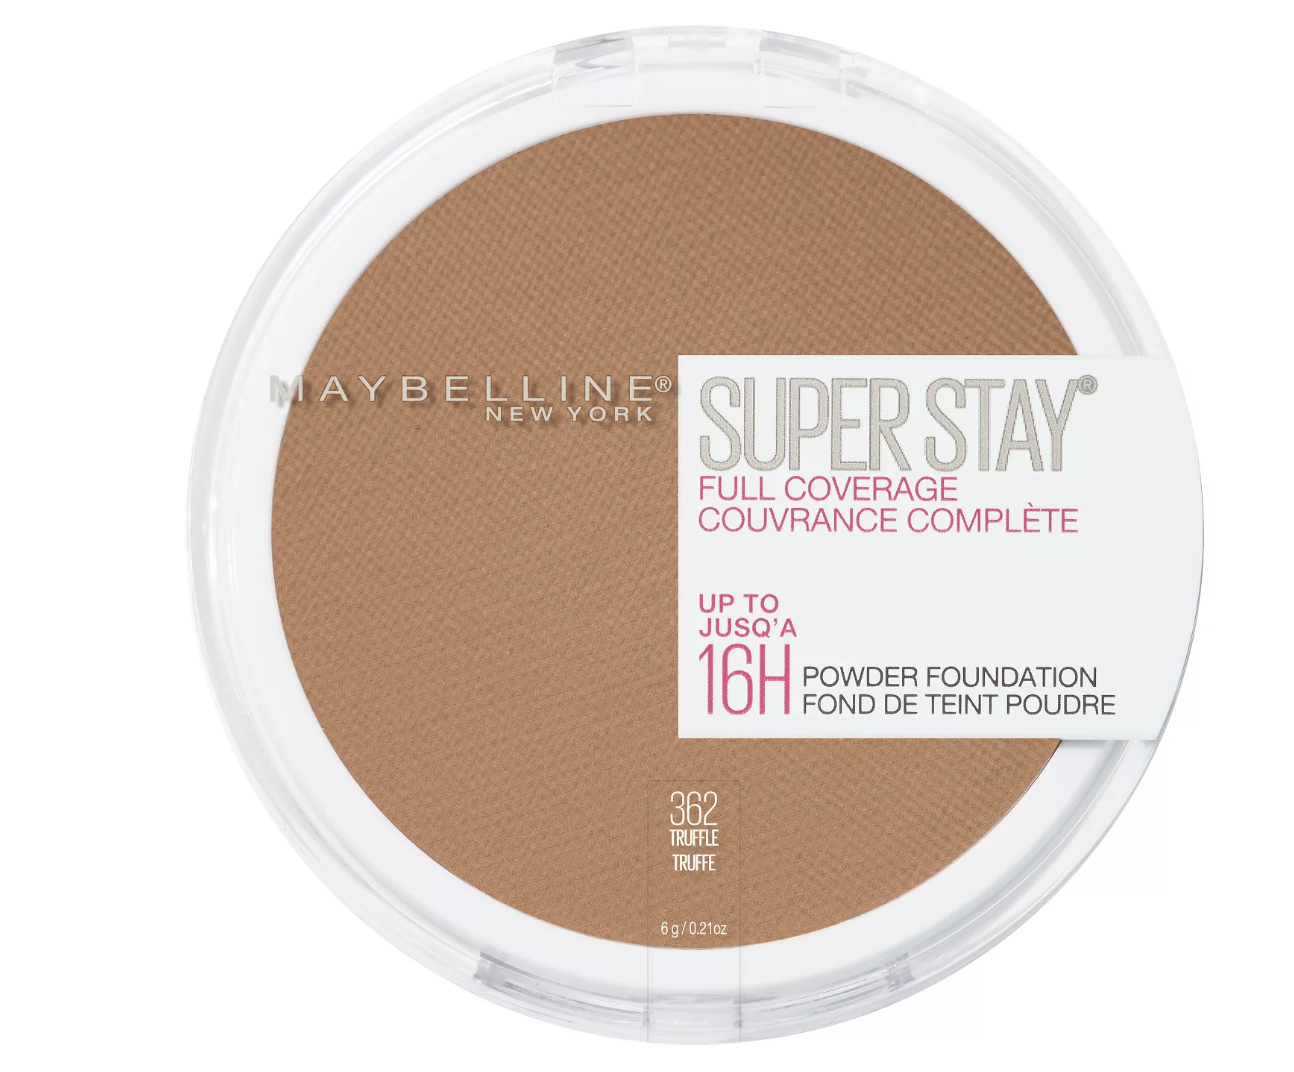 maybelline superstay powder foundation, best drugstore powder foundation